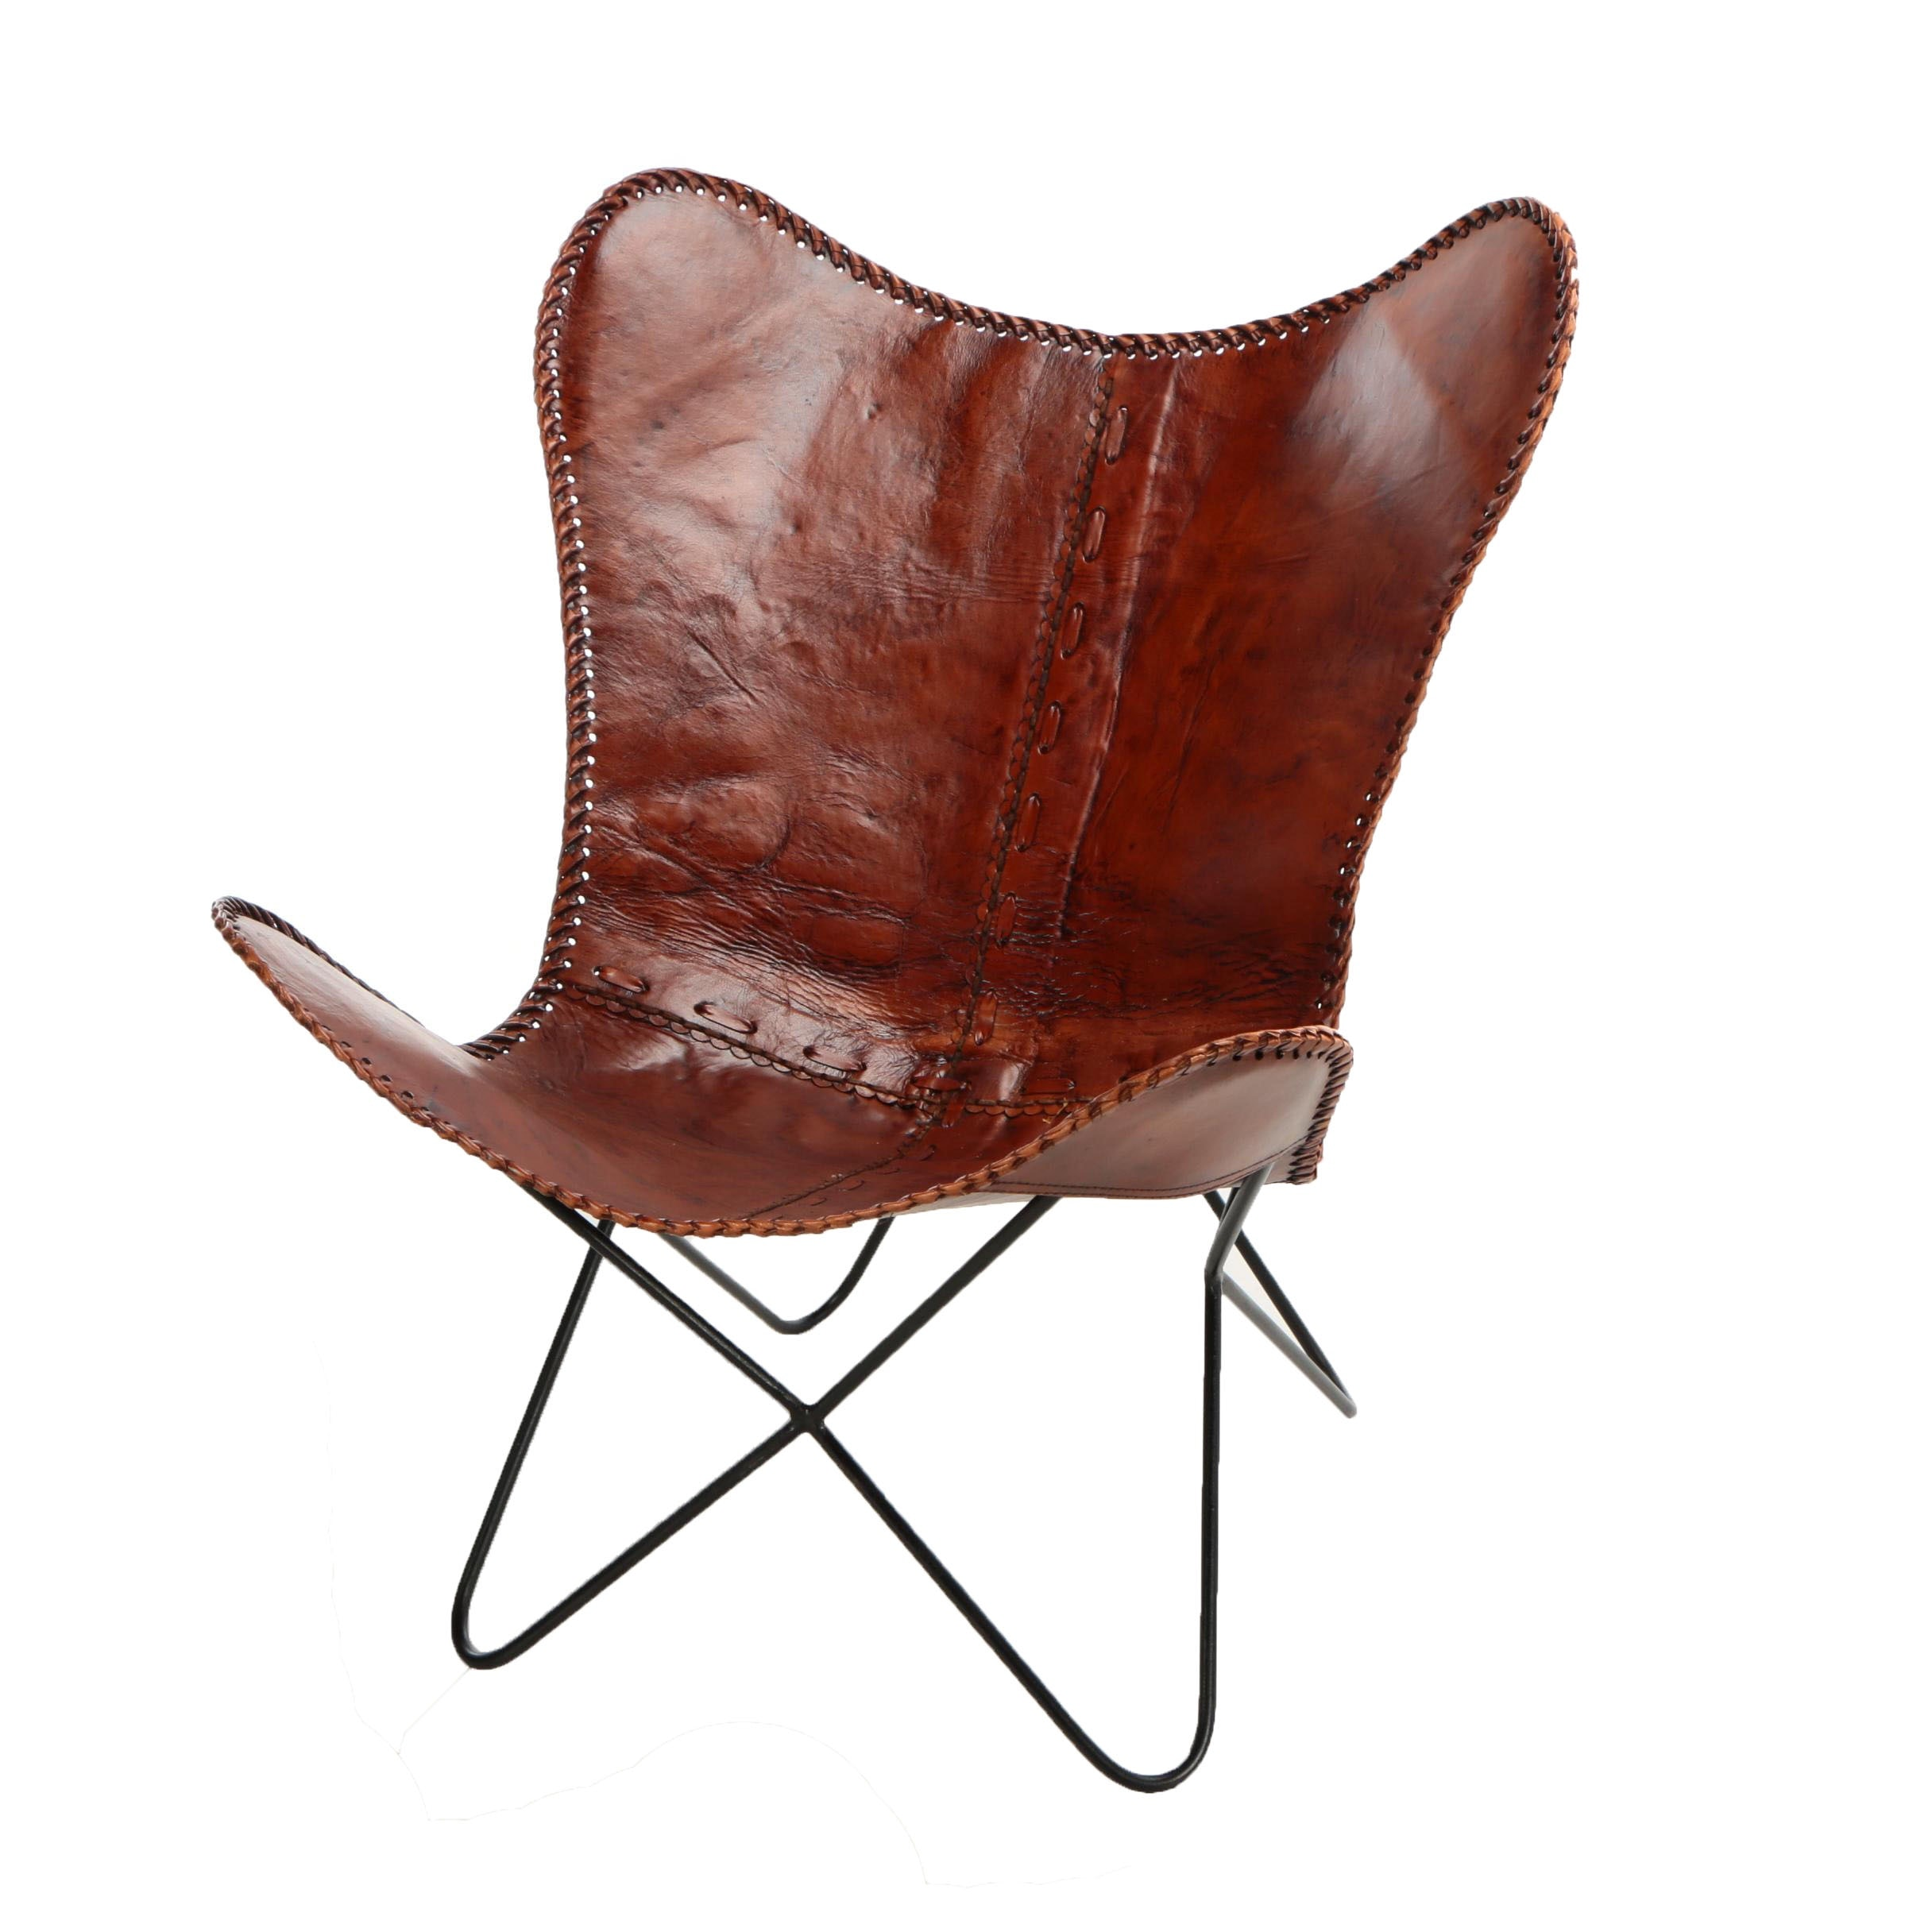 Stitched Leather Butterfly Chair, 21st Century ...